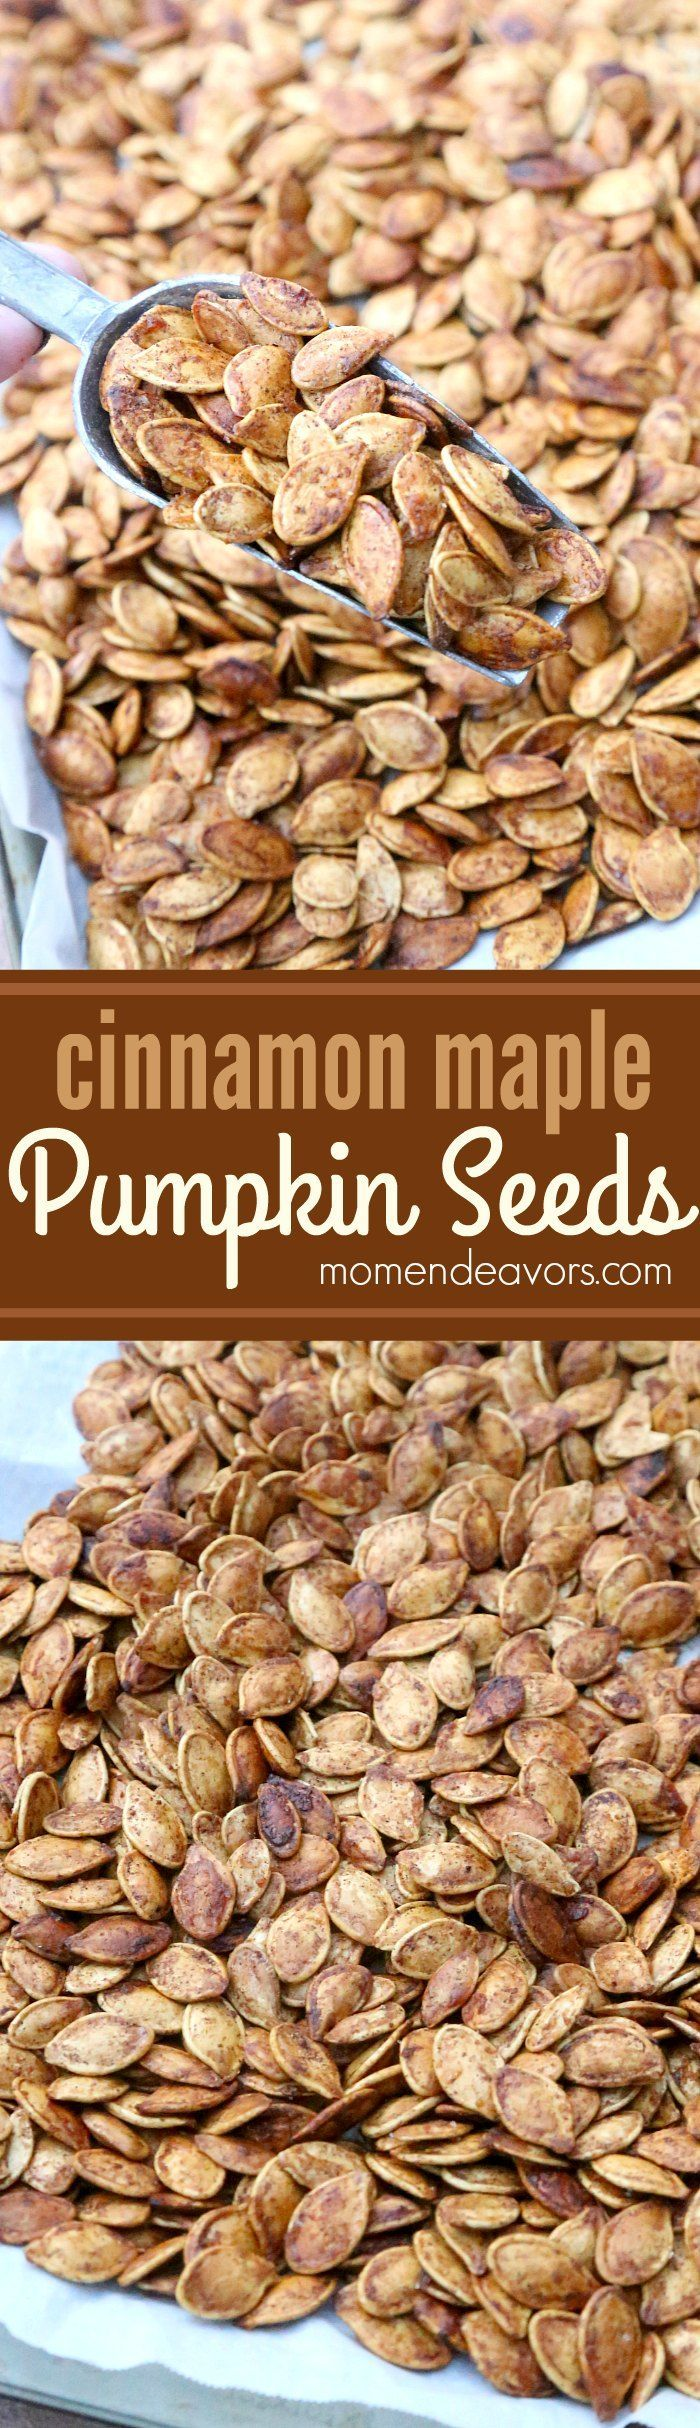 Roasted cinnamon maple pumpkin seeds - a delicious & healthy fall snack recipe!